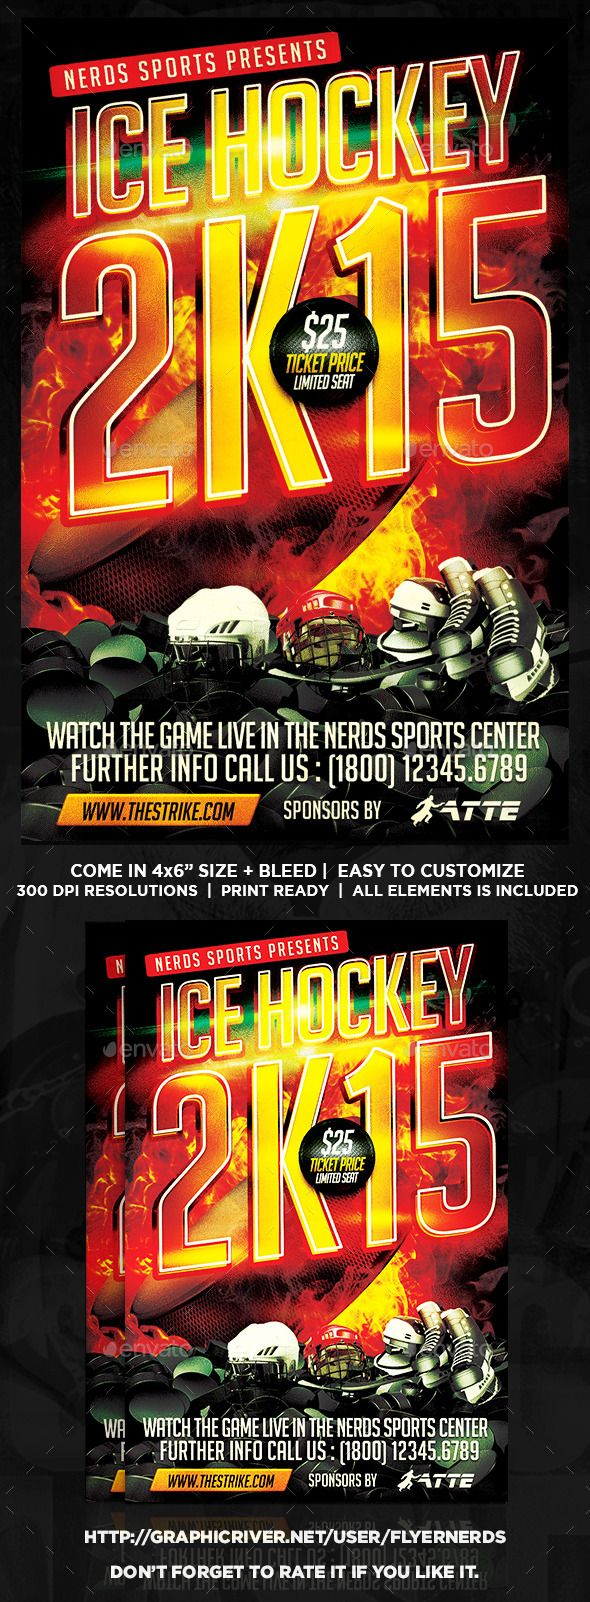 Ice hockey 2k15 championships flyer ice hockey hockey and flyer ice hockey 2k15 championships flyer maxwellsz